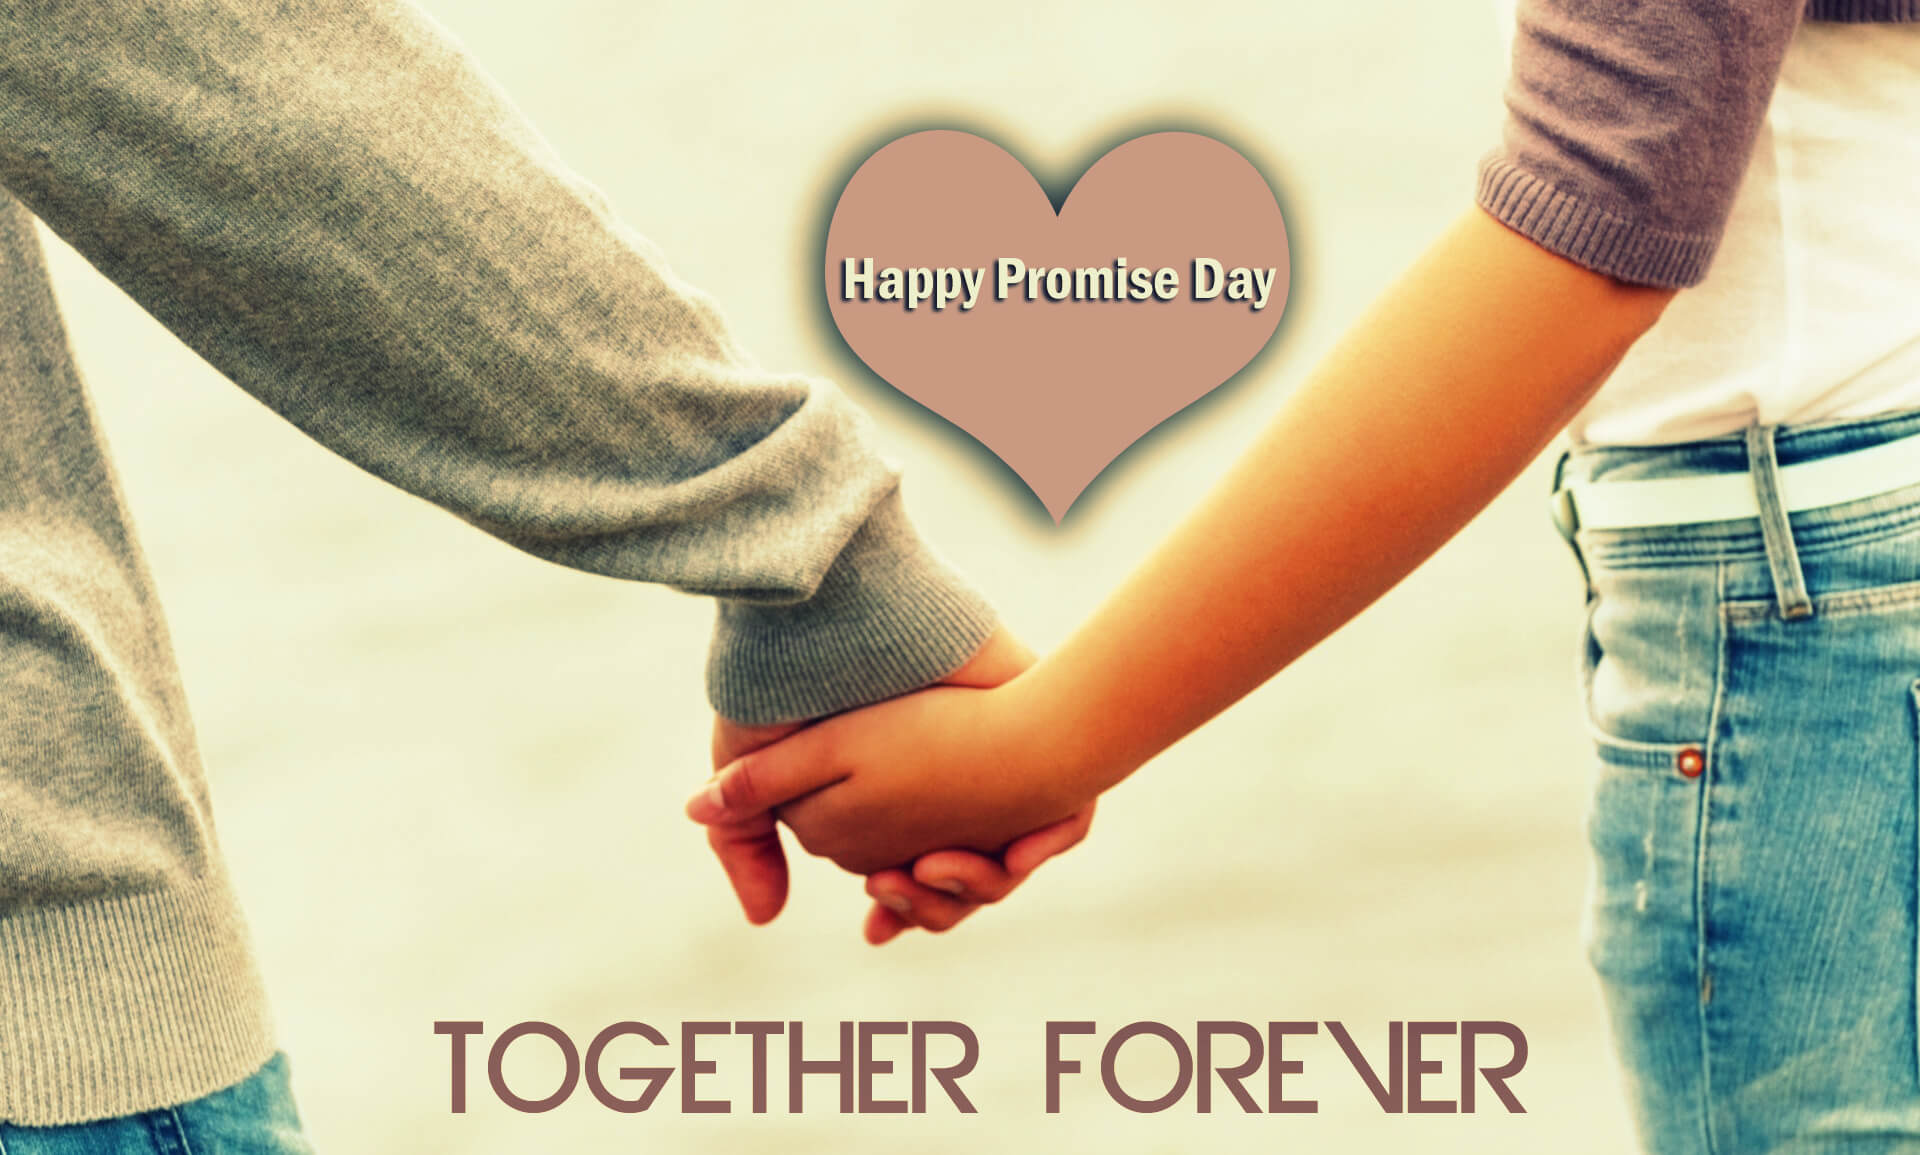 Charming Happy Promise Day Wishes Love Valentine Together Forever Image Hd Wallpaper